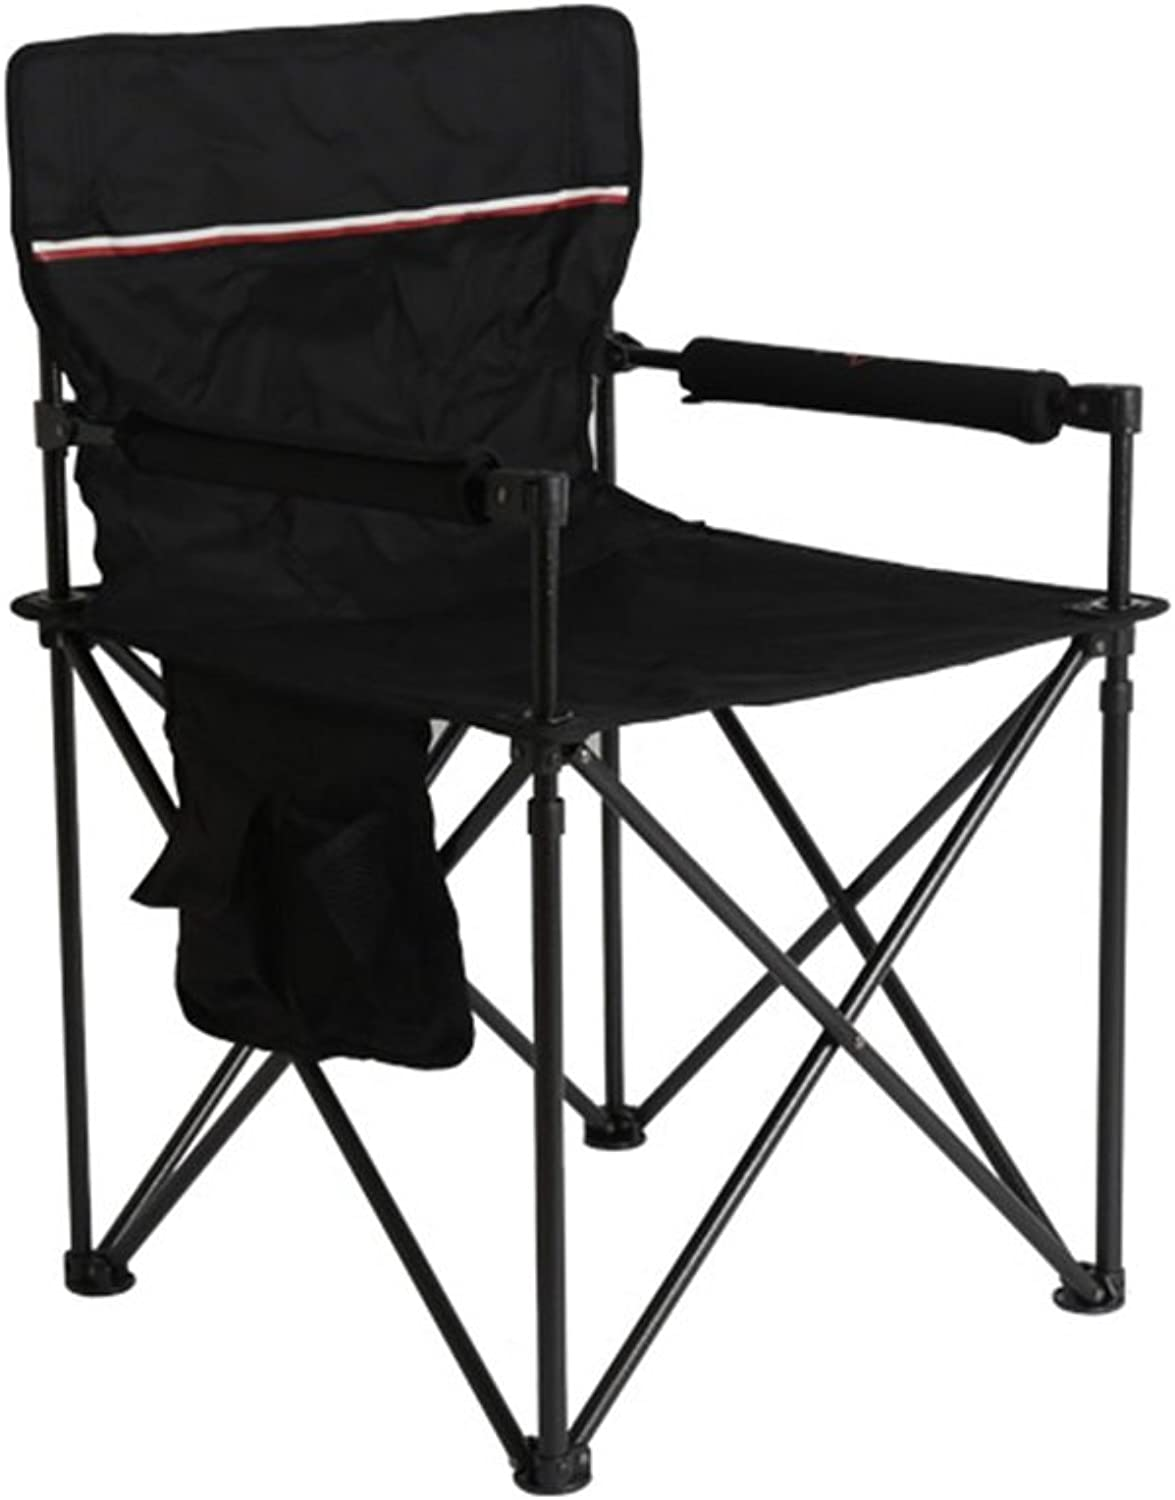 Chairs Folding Stool Portable Mini Ergonomics Ultralight with Backrest and Armrest Director's Chair for Fishing Hiking Park Beach